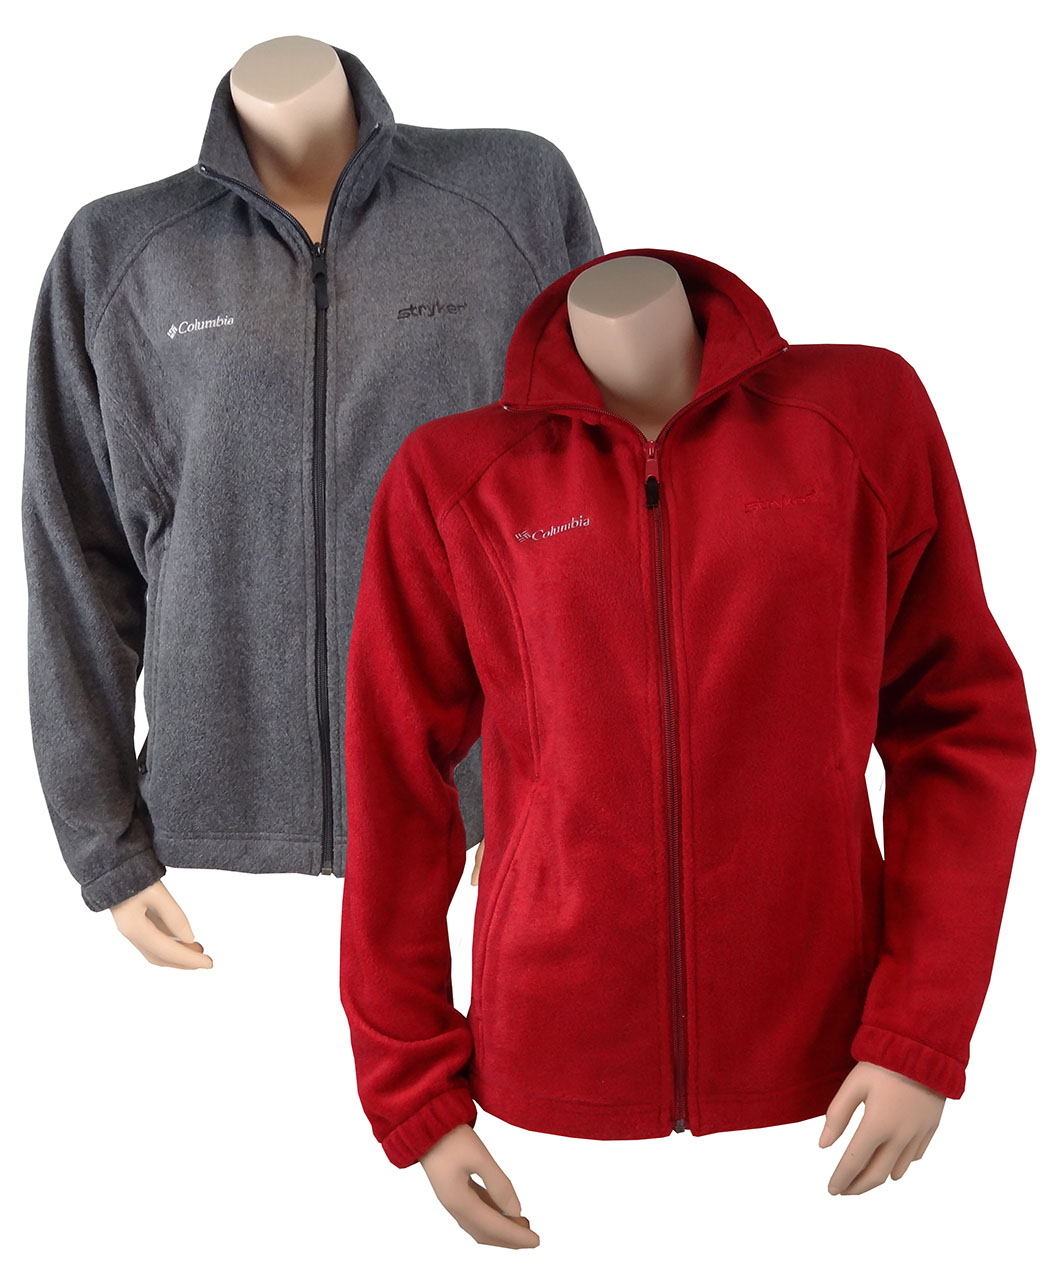 Women'S Red Fleece Jacket - Coat Nj